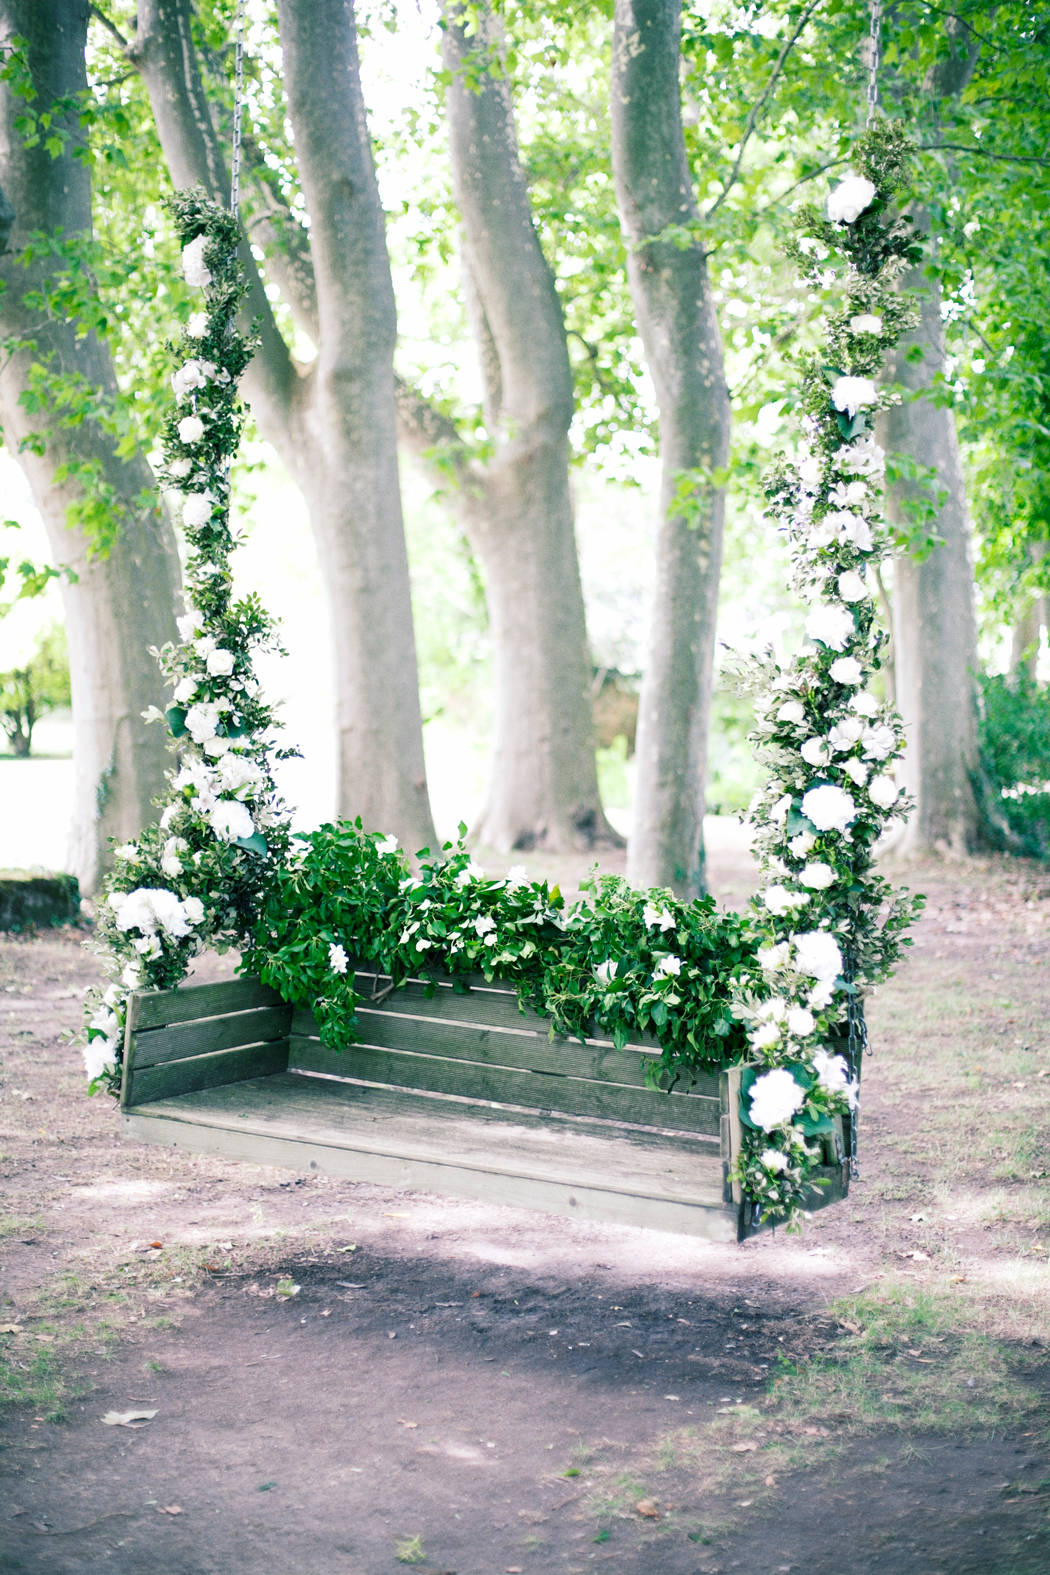 hanging porch rocker with white flowers